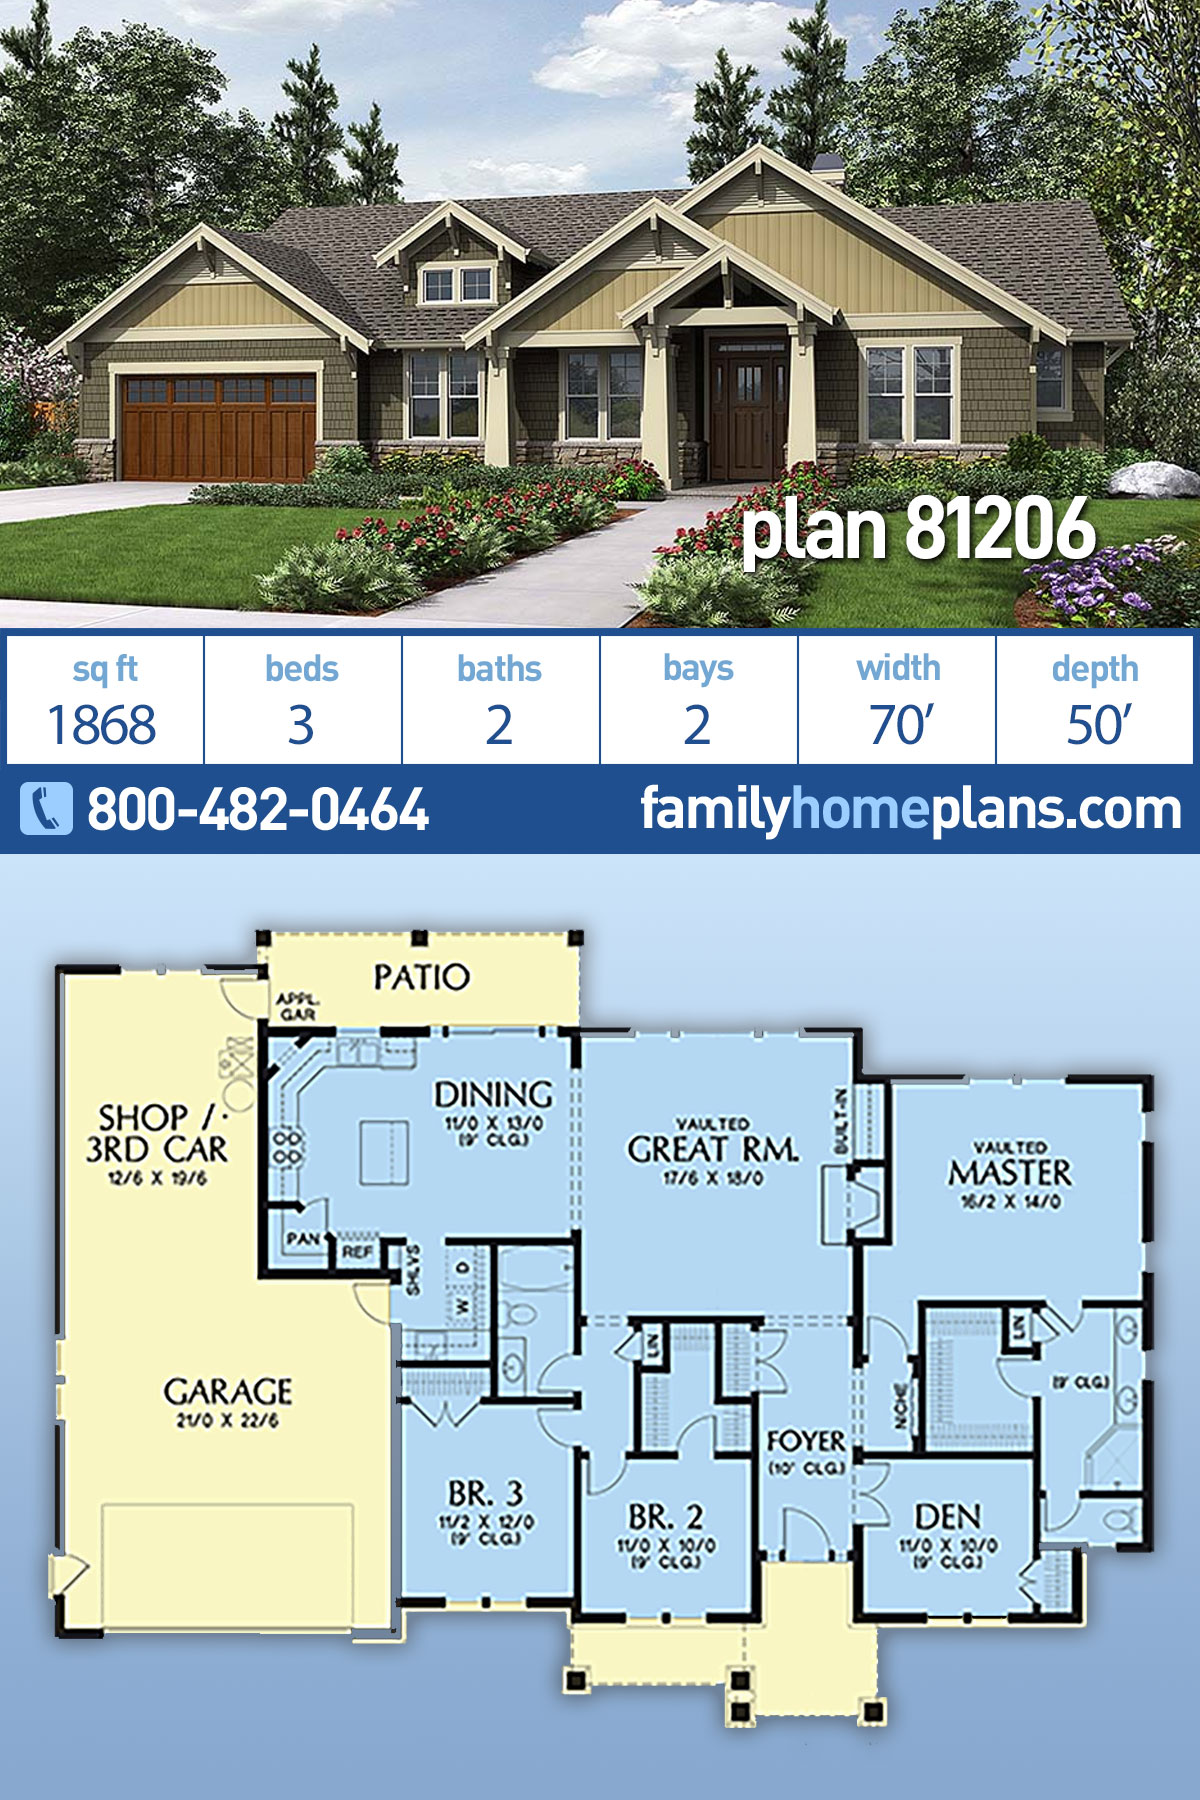 Bungalow, Craftsman House Plan 81206 with 3 Beds, 2 Baths, 2 Car Garage